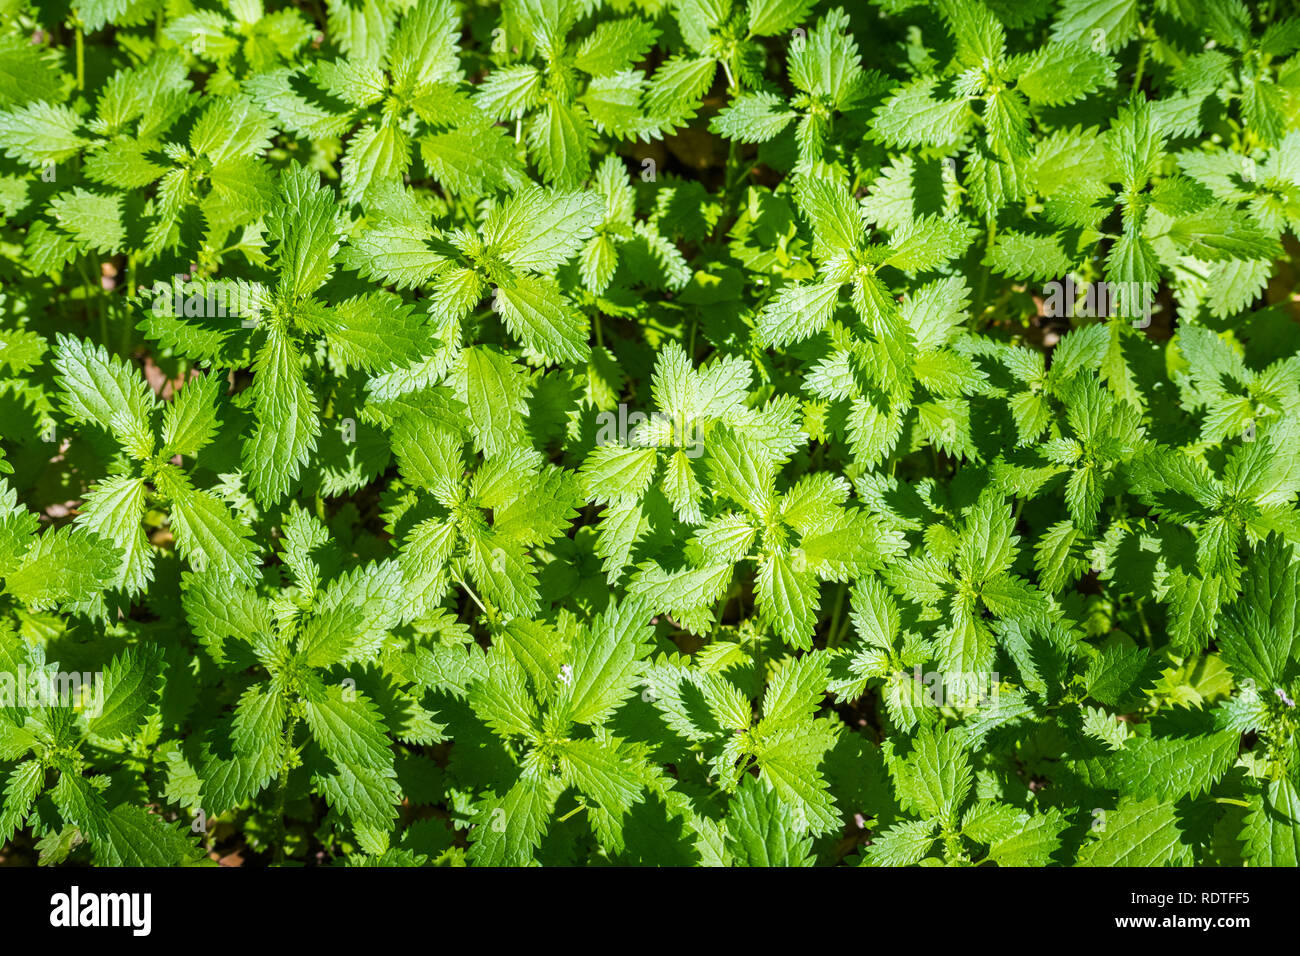 View from above of a patch of Stinging Nettle (Urtica dioica) growing on a meadow, California Stock Photo